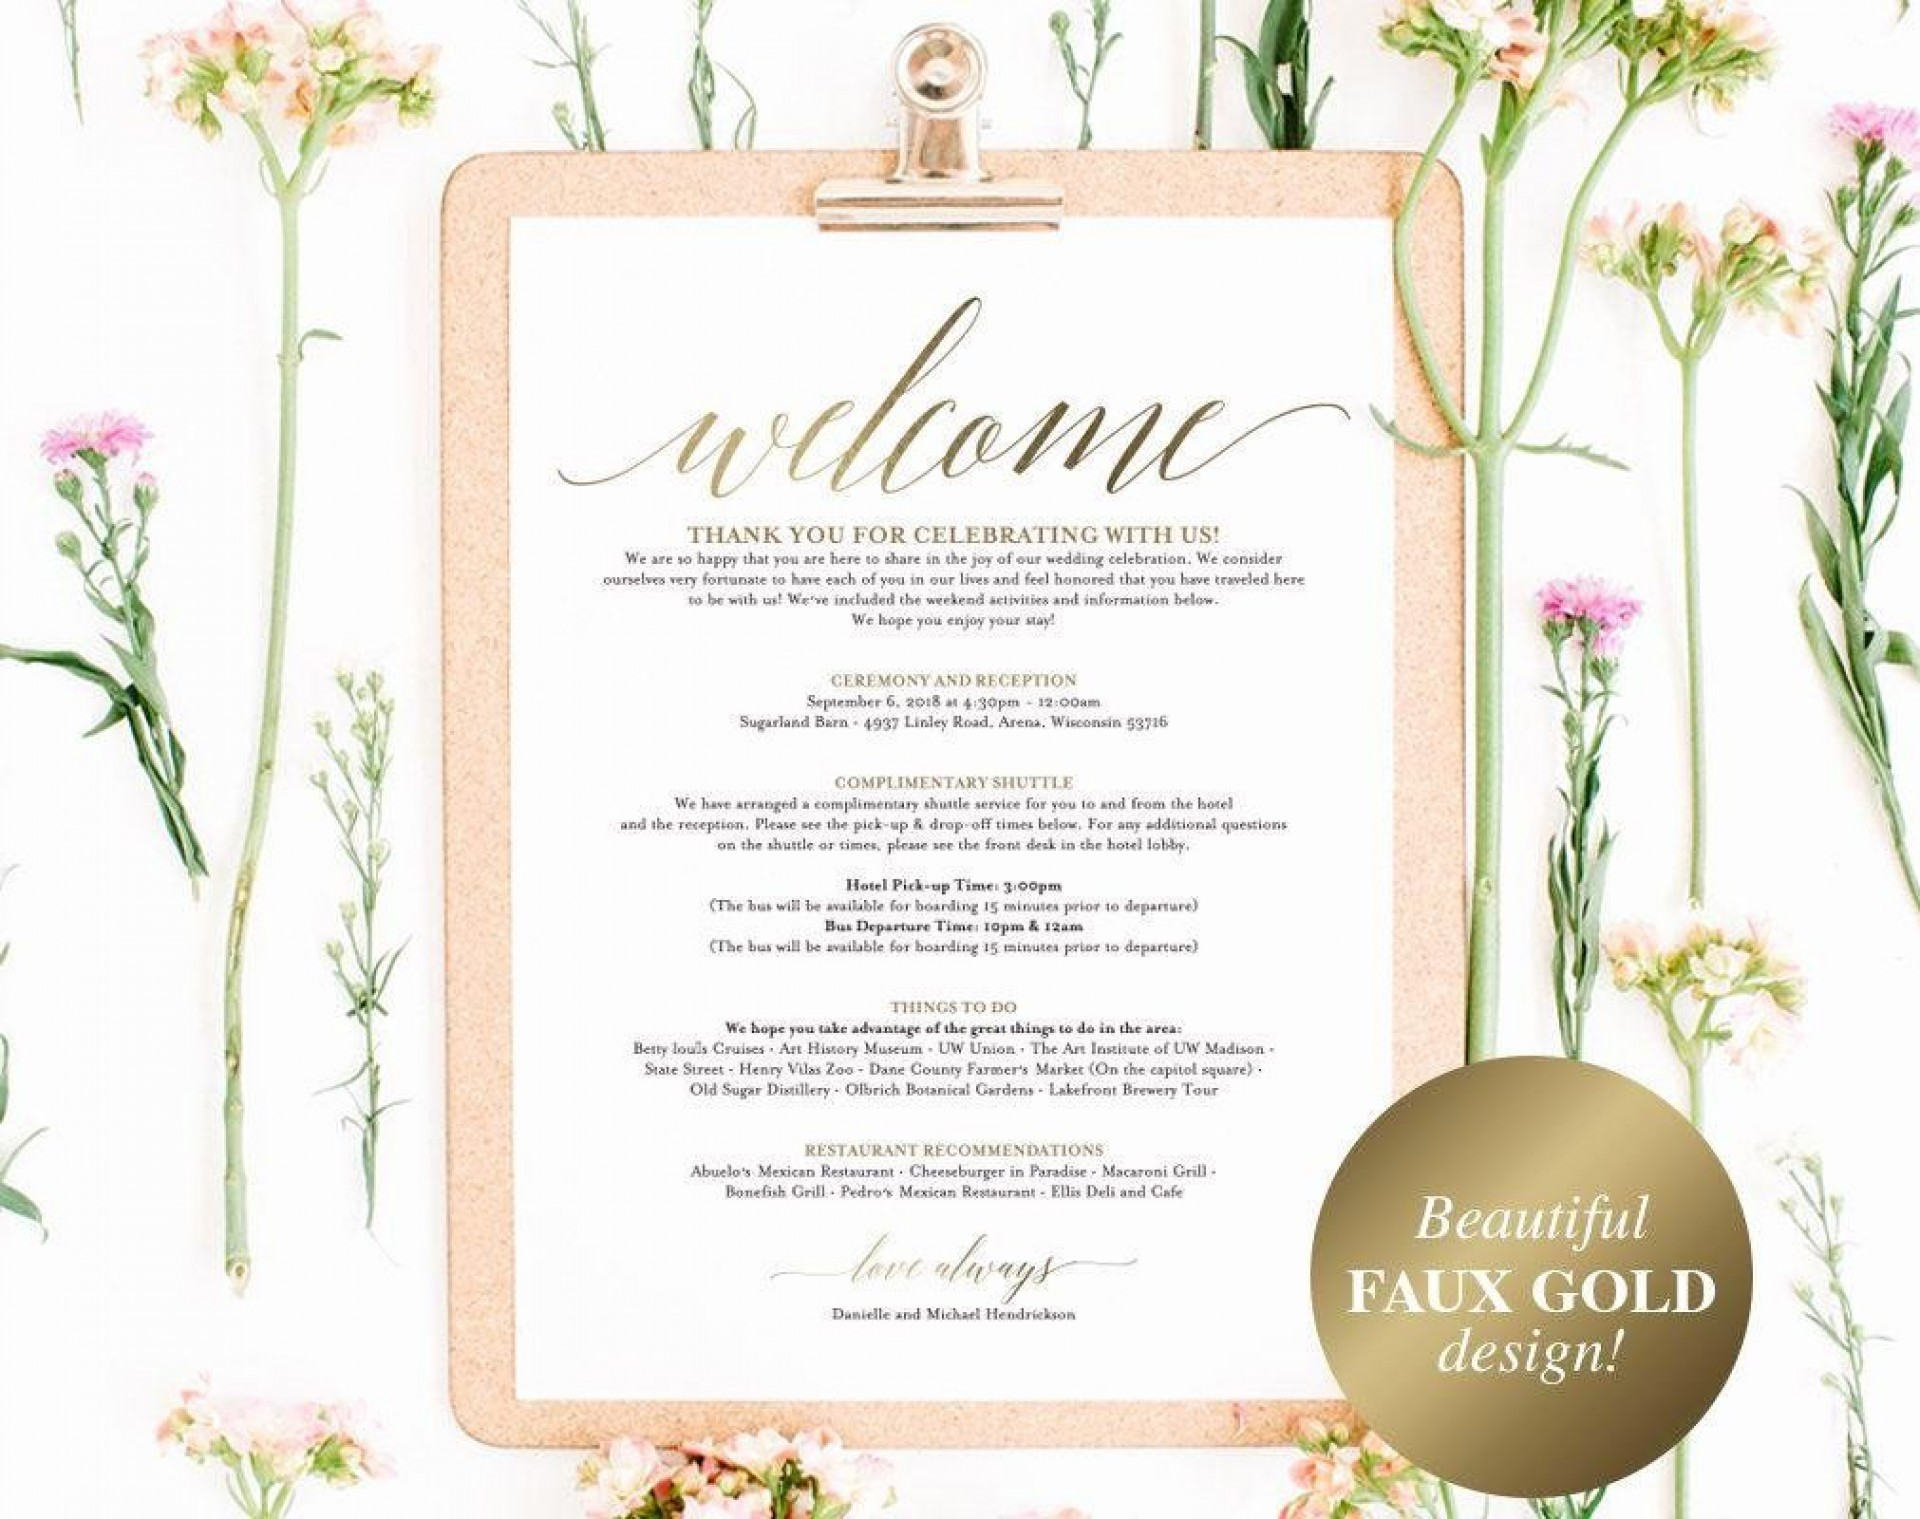 005 Unusual Wedding Hotel Welcome Letter Template Highest Clarity 1920